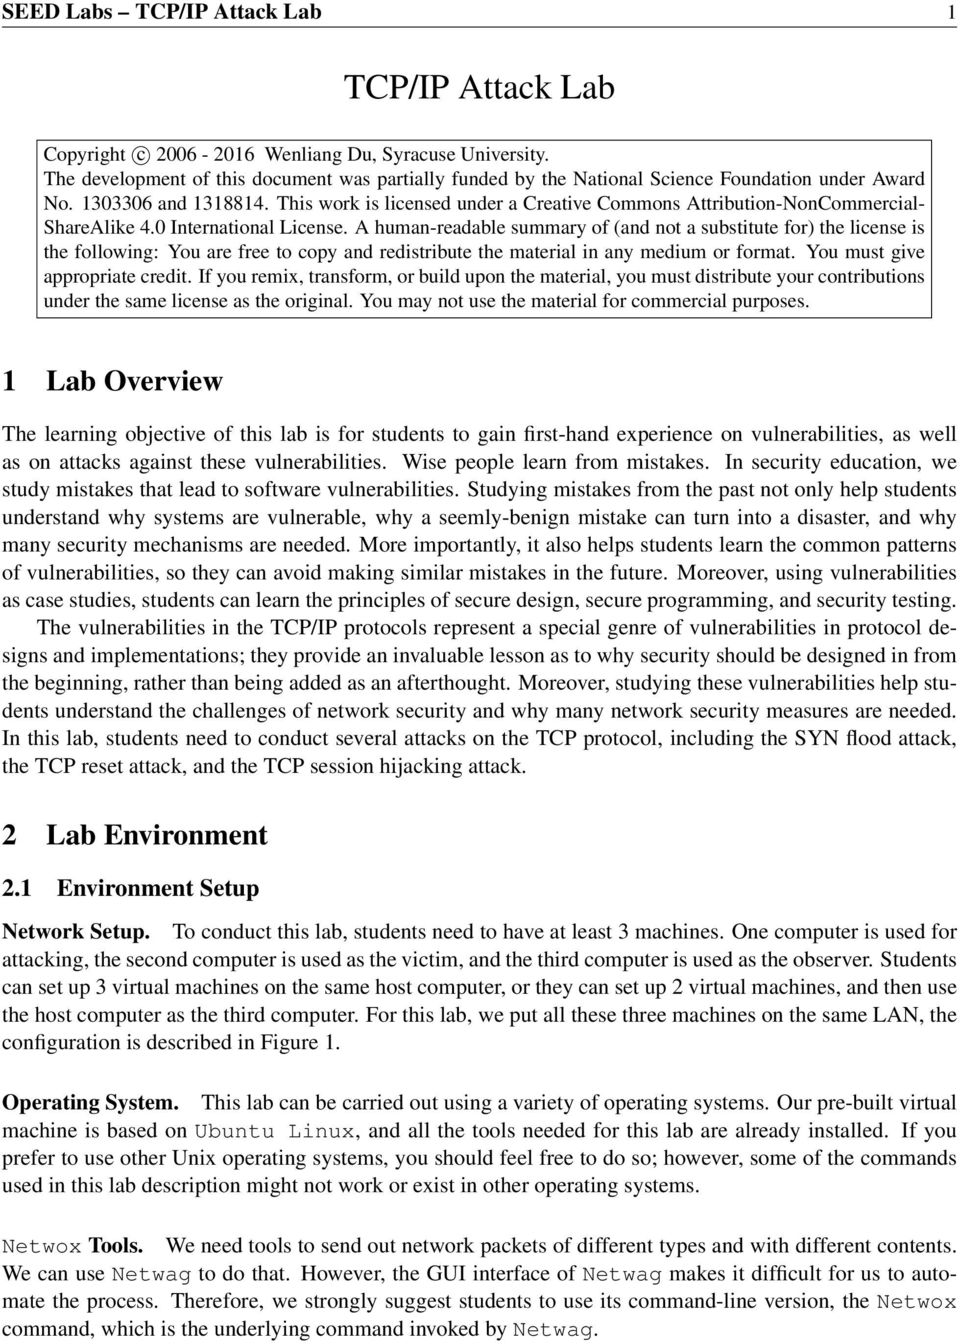 TCP/IP Attack Lab  1 Lab Overview  2 Lab Environment  2 1